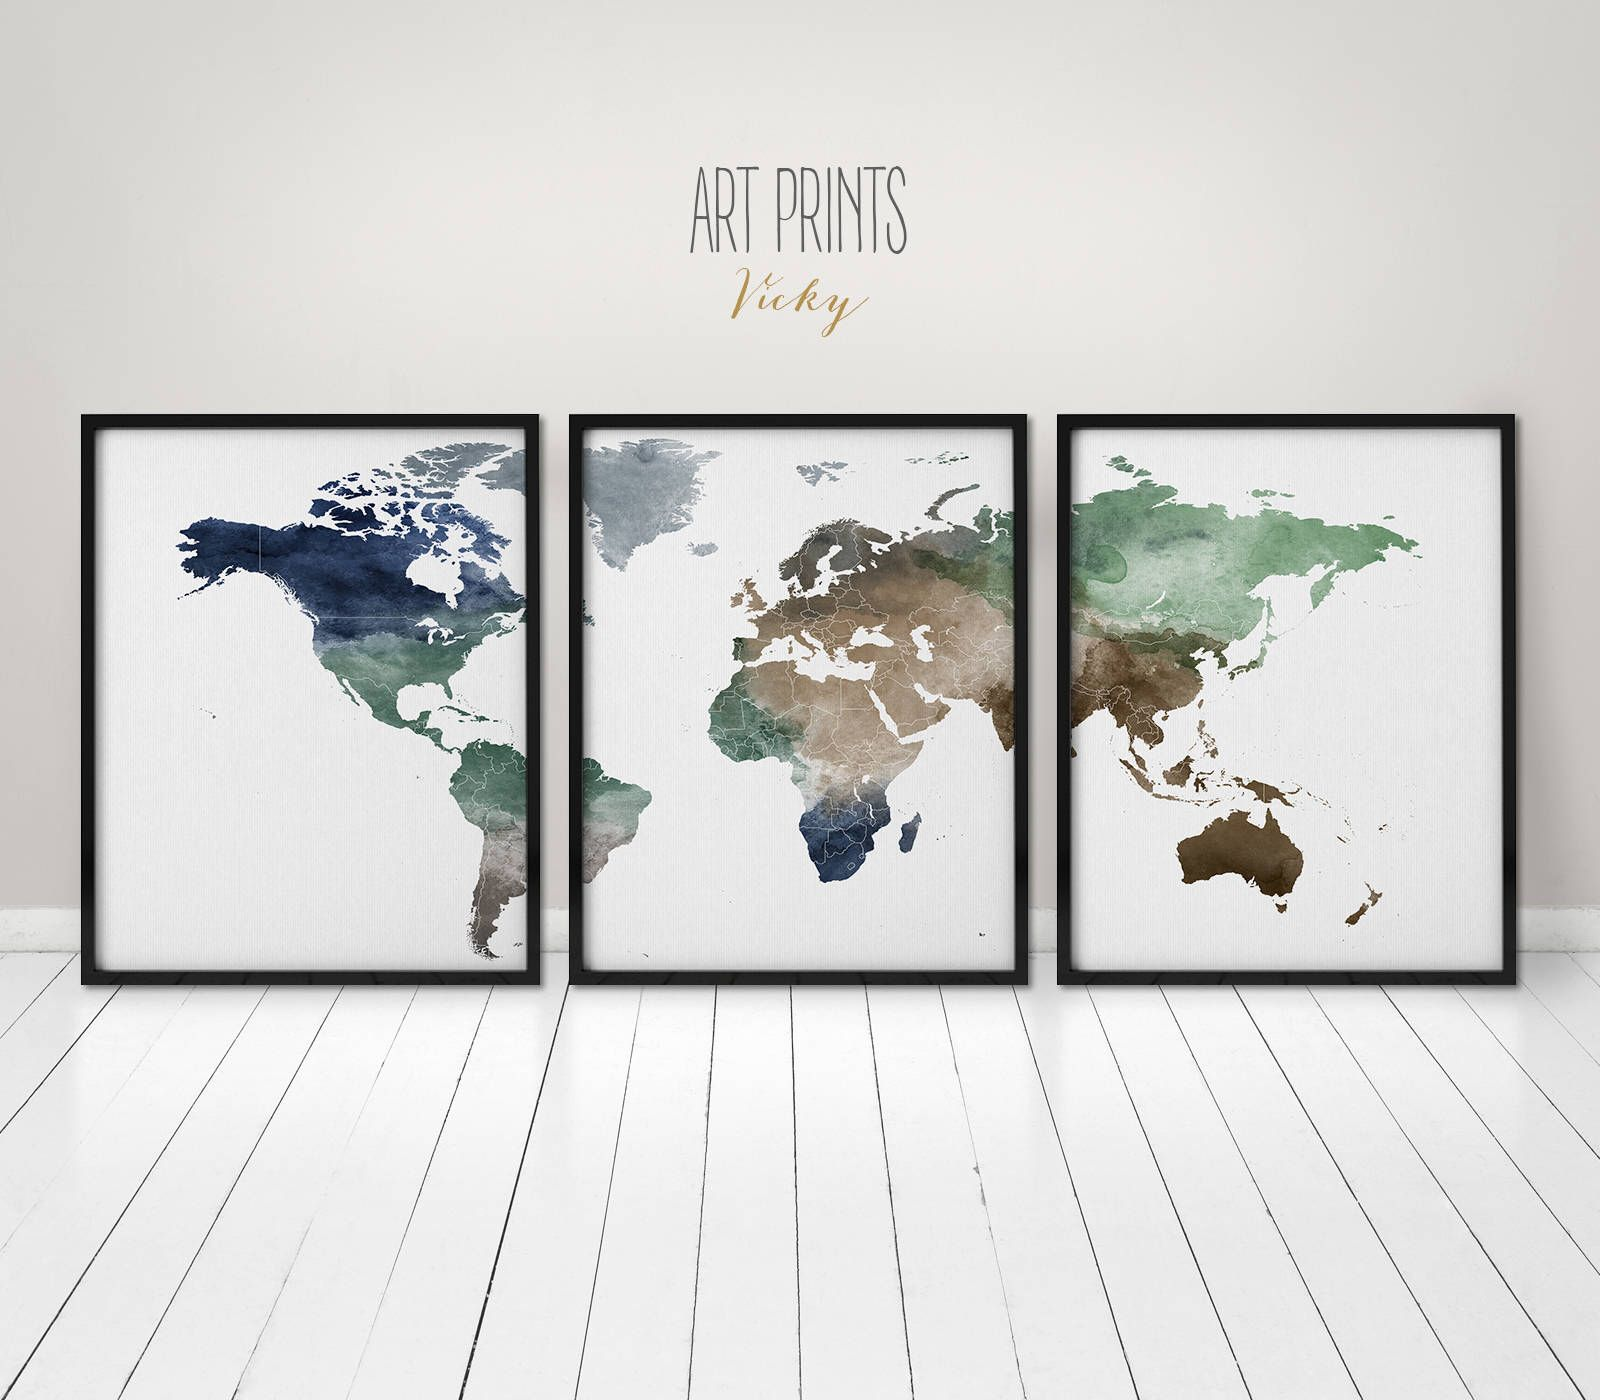 prints for office walls. World Map Wall Art, Print, Poster, 3 Pieces Art Office Travel Gift, Decor, ArtPrintsVicky Prints For Walls H